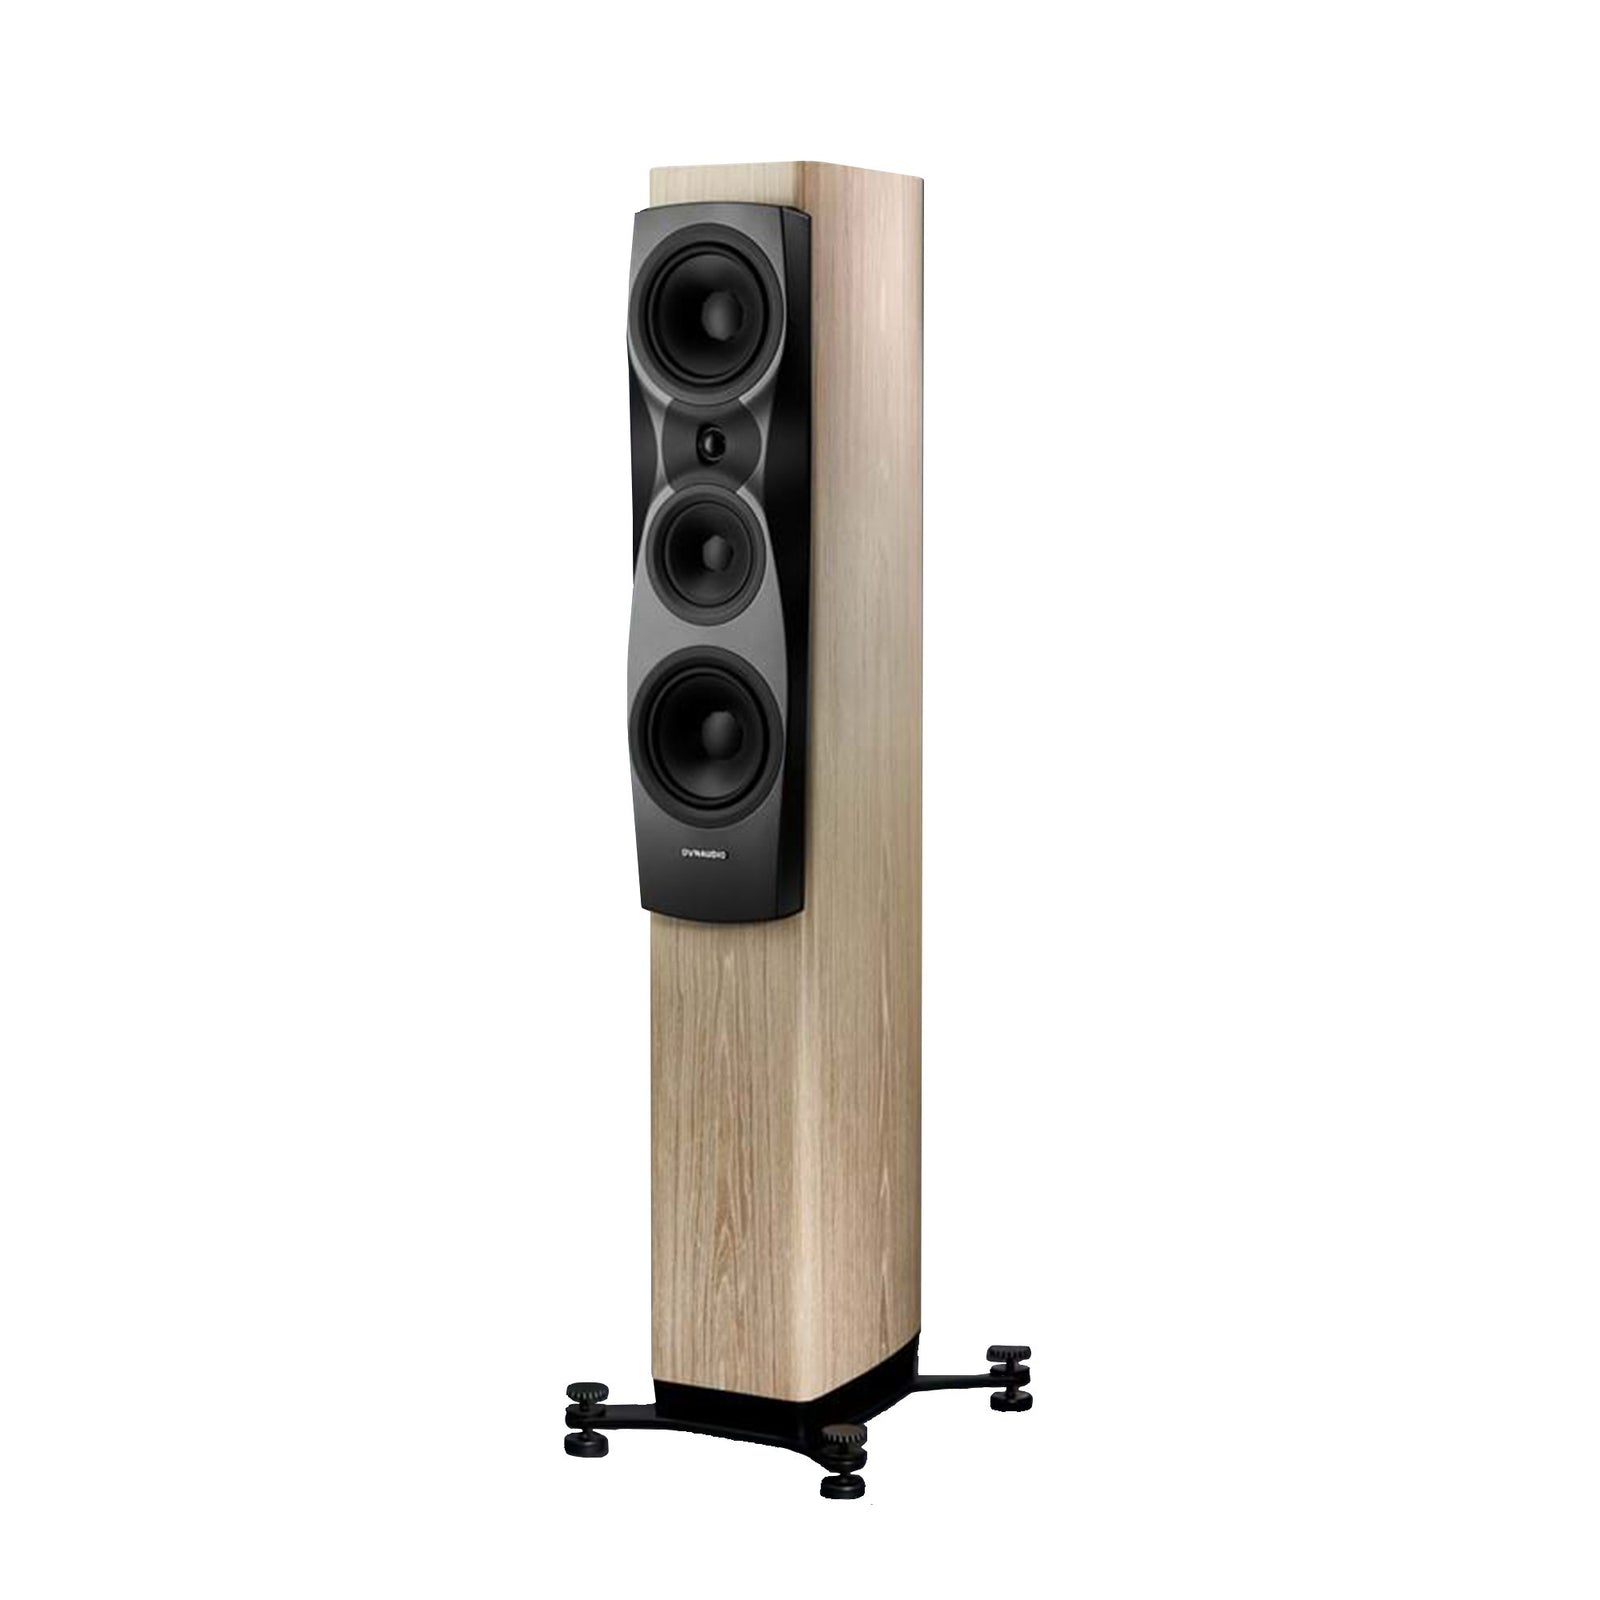 Confidence 30 speaker in Blonde wood